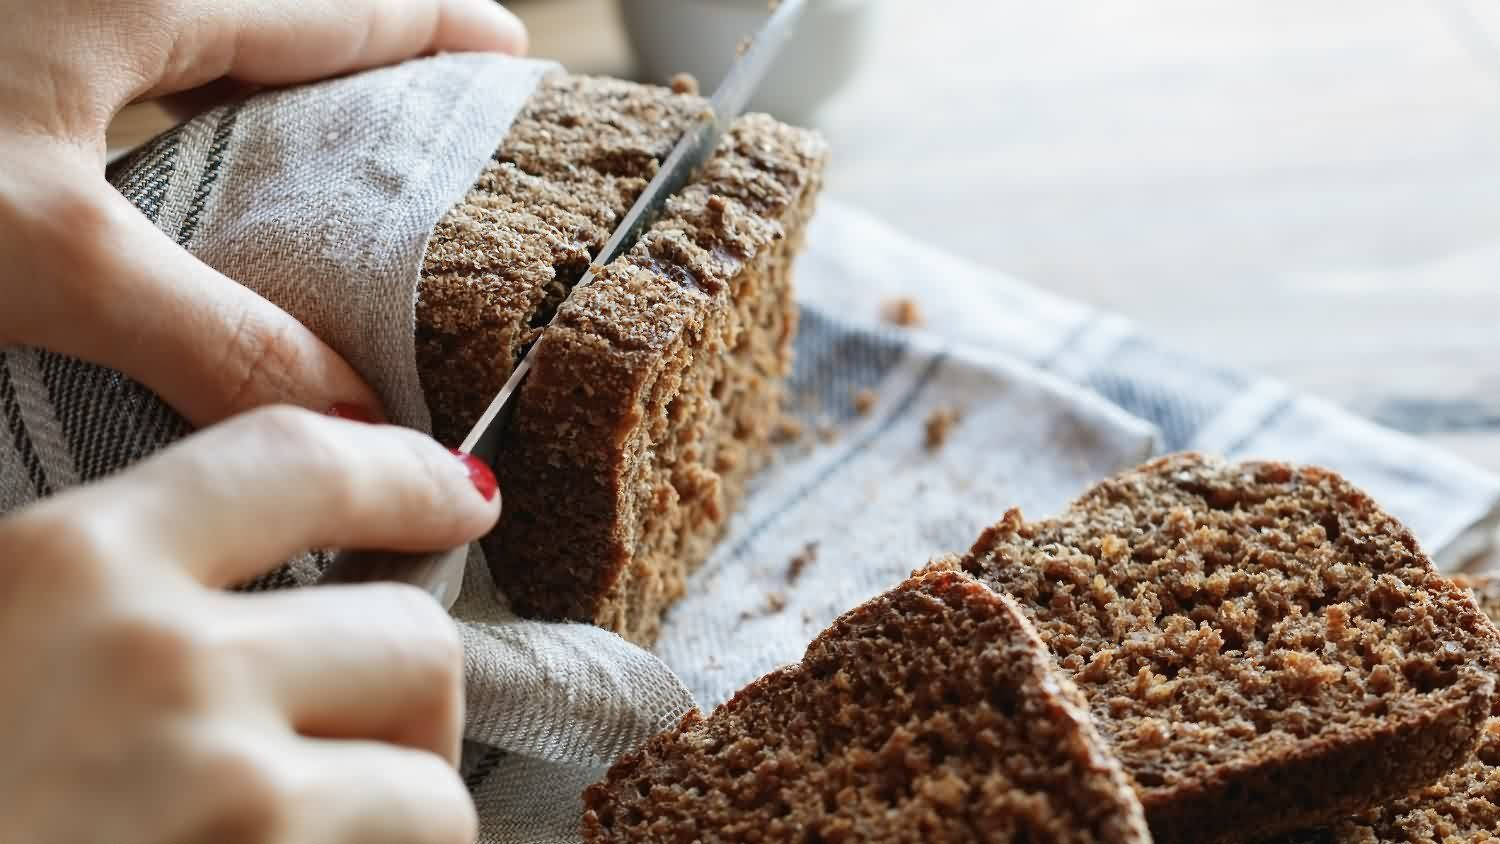 Mandatory-folic-acid-fortification-of-bread-backed-by-experts-in-New-Zealand